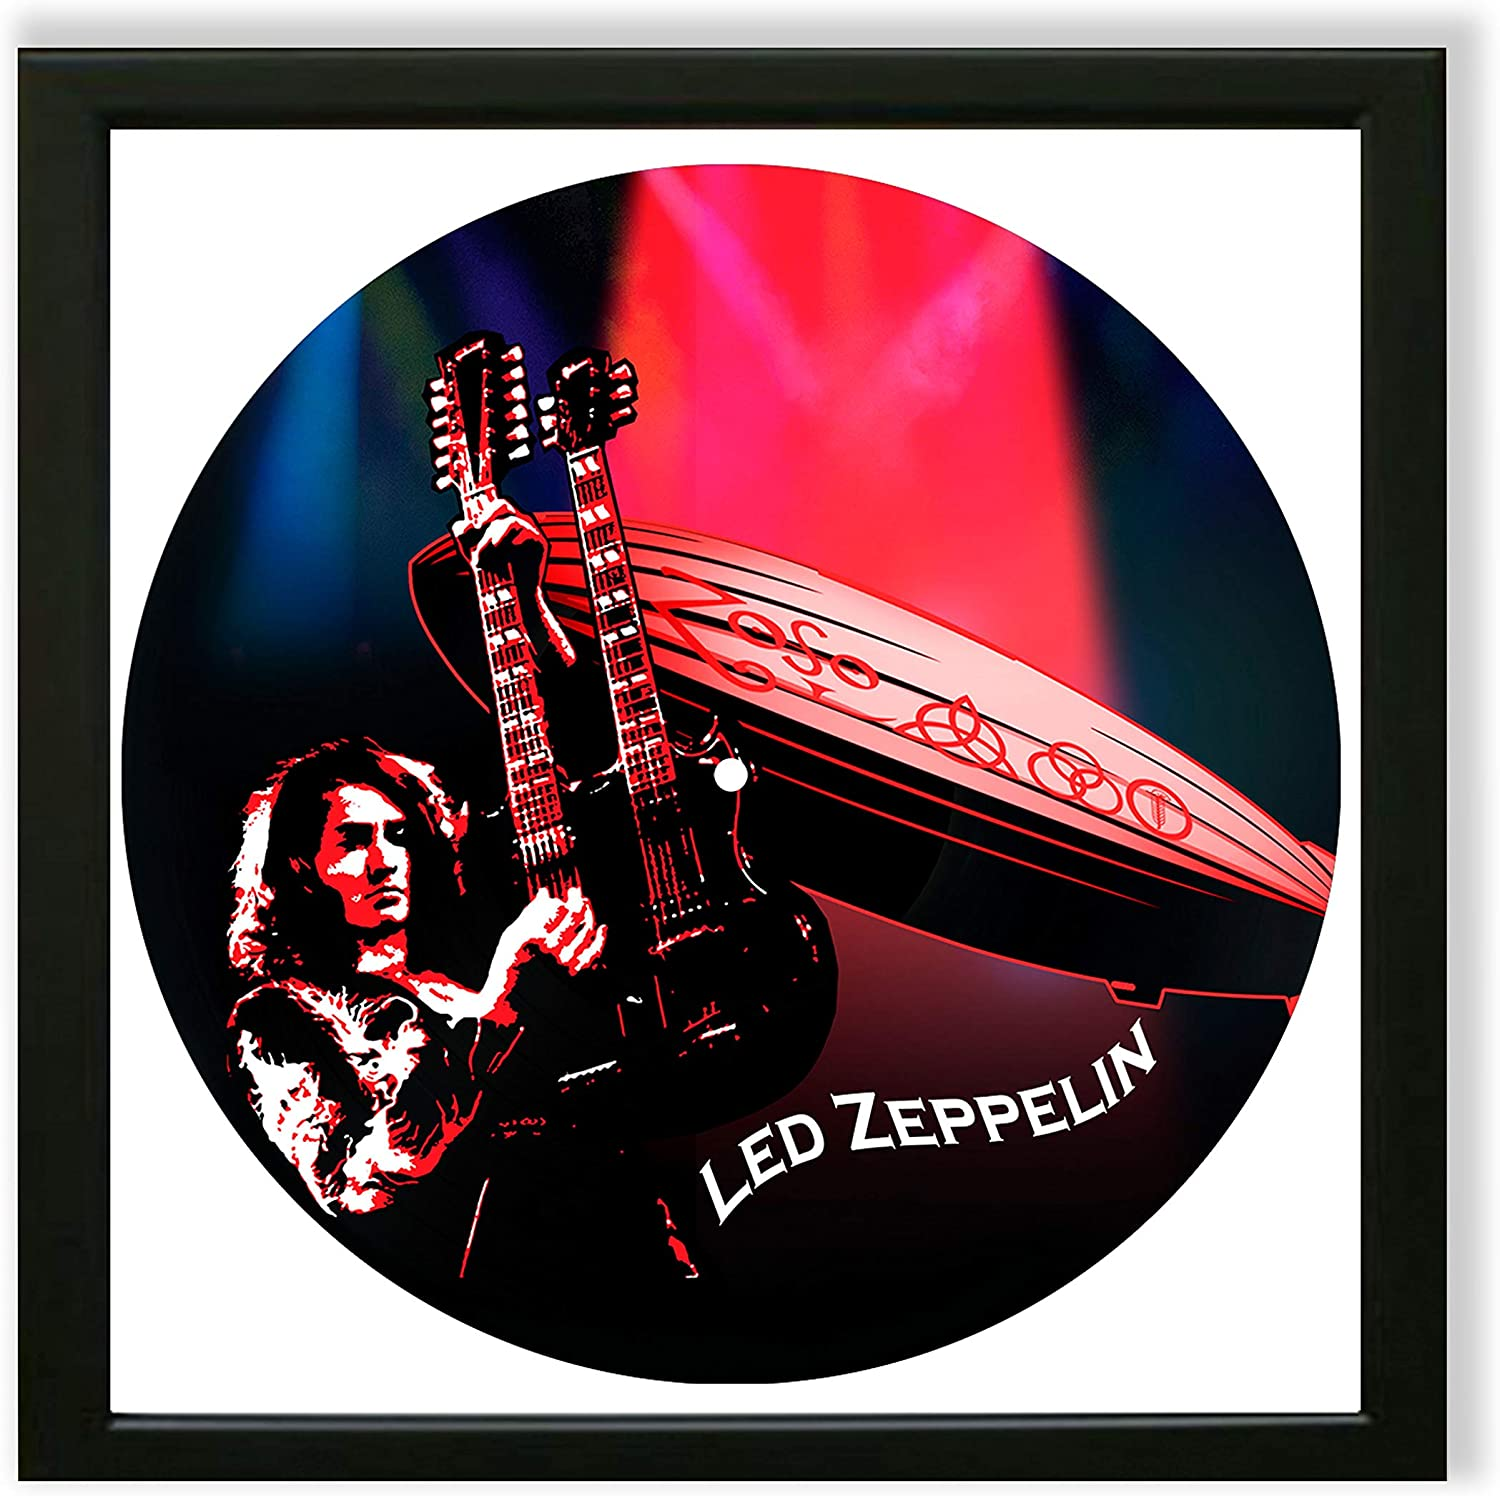 """Led Zeppelin Vinyl Frame Décor 14""""x14"""", Wall Framed Decor Painted Led Zeppelin, Original Gifts for Music Lovers, The Best Gift for Souvenirs, Unique Wall Art Home Decor"""